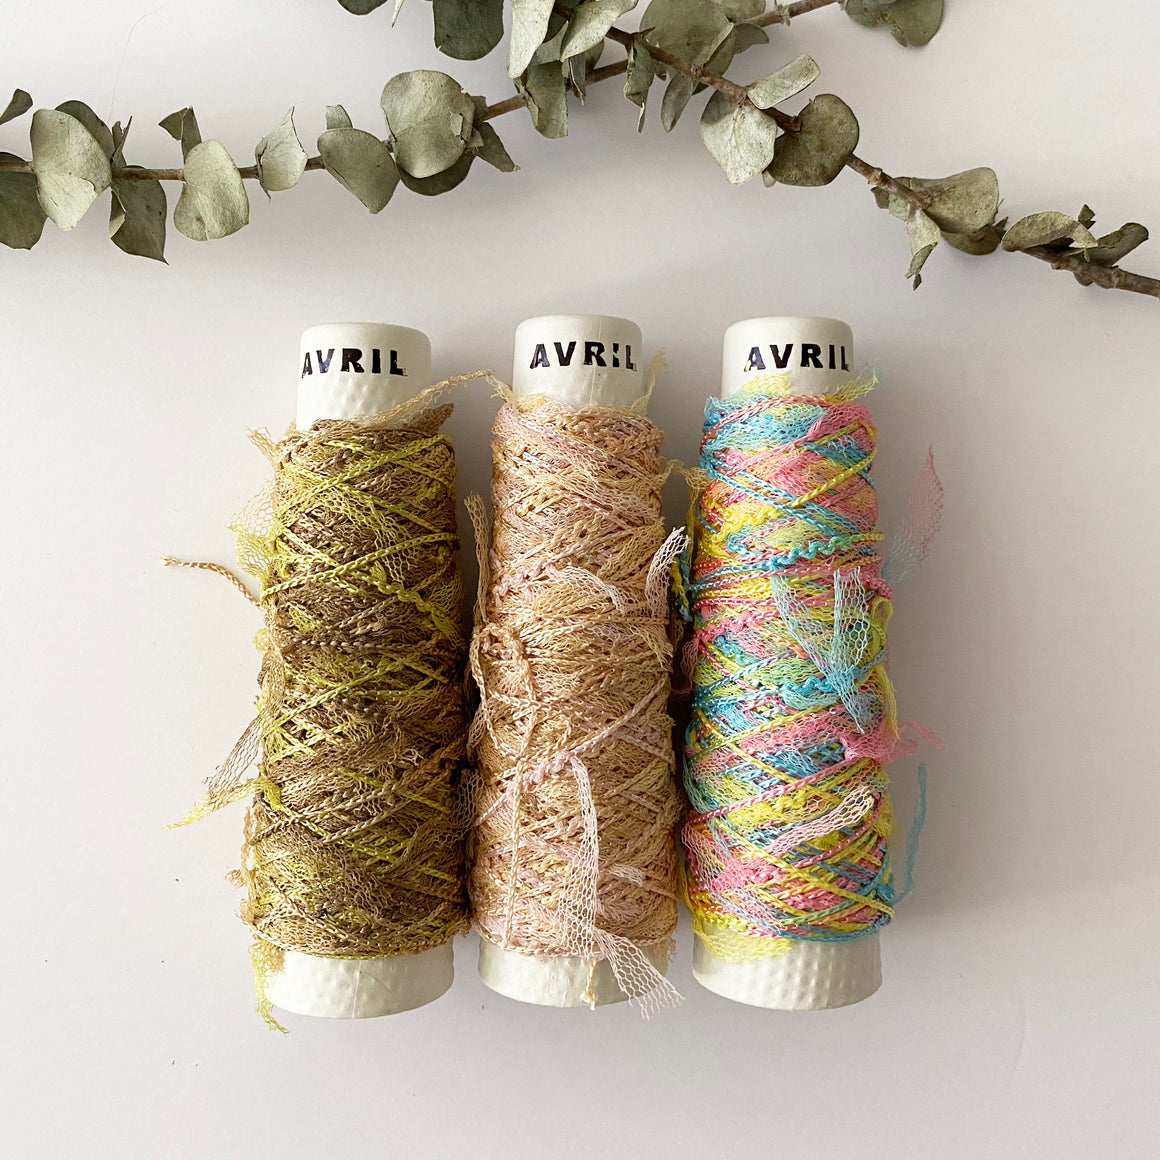 Avril Yarn Russell Ribbon Multi Color C-3942-P